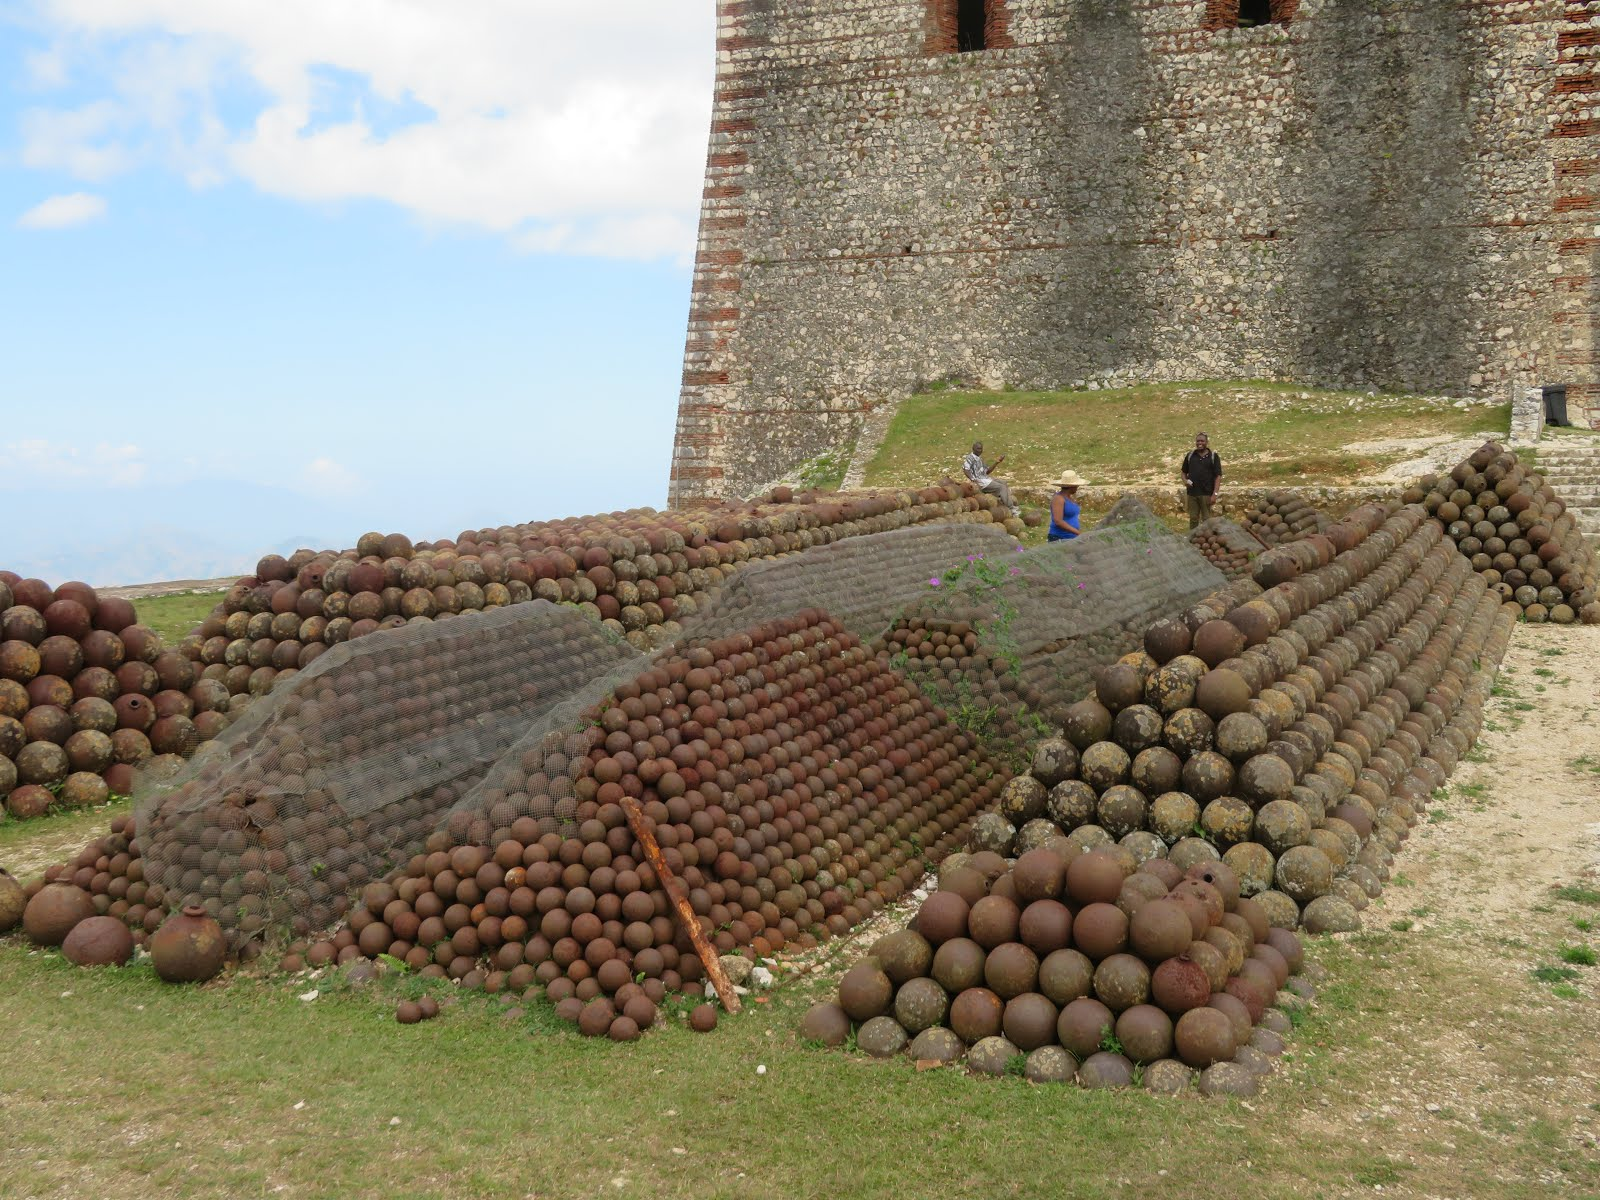 The impressive collection of cannonballs within the walls of The Citadel, in Haiti